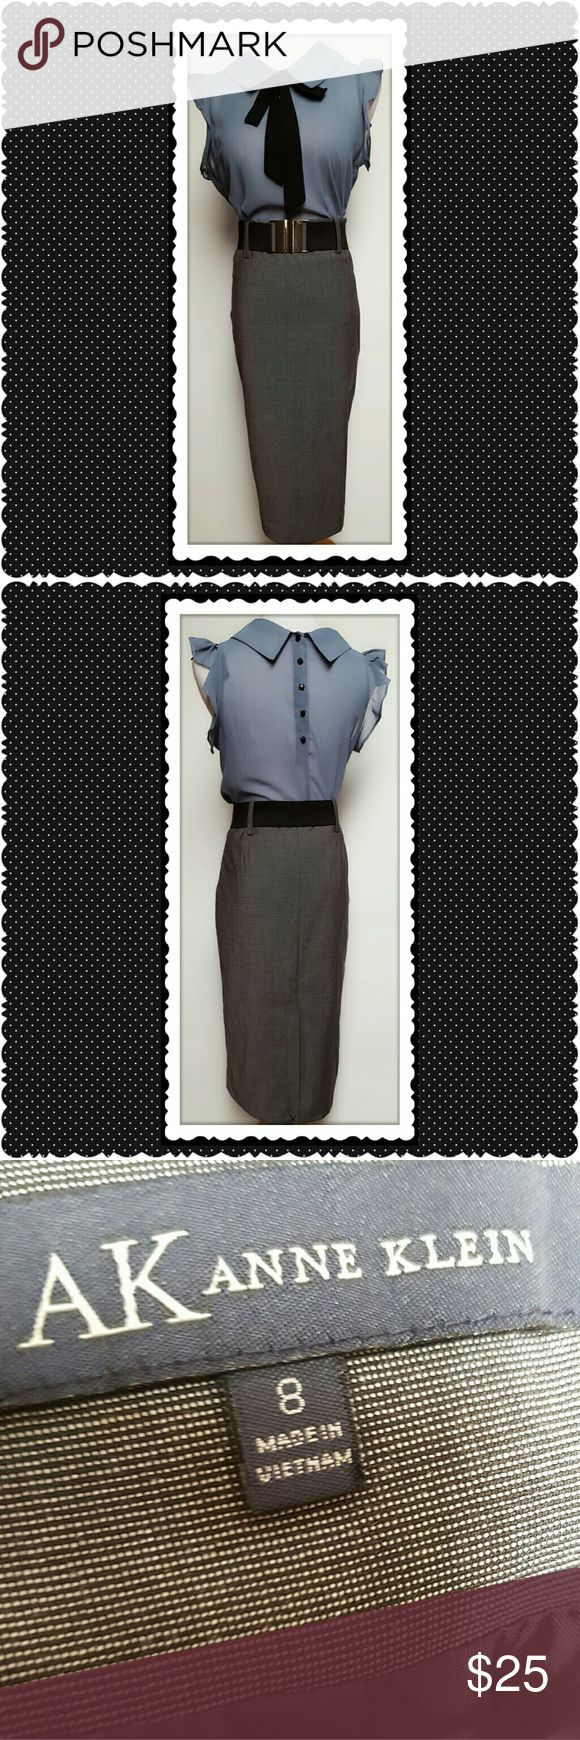 Anne Klein Gray Pencil Skirt Anne Klein Gray Pencil Skirt. Form fitting, high waisted skirt. Back accent slit. Side zip closure. Perfect, no flaws. NWOT. Anne Klein Skirts Pencil